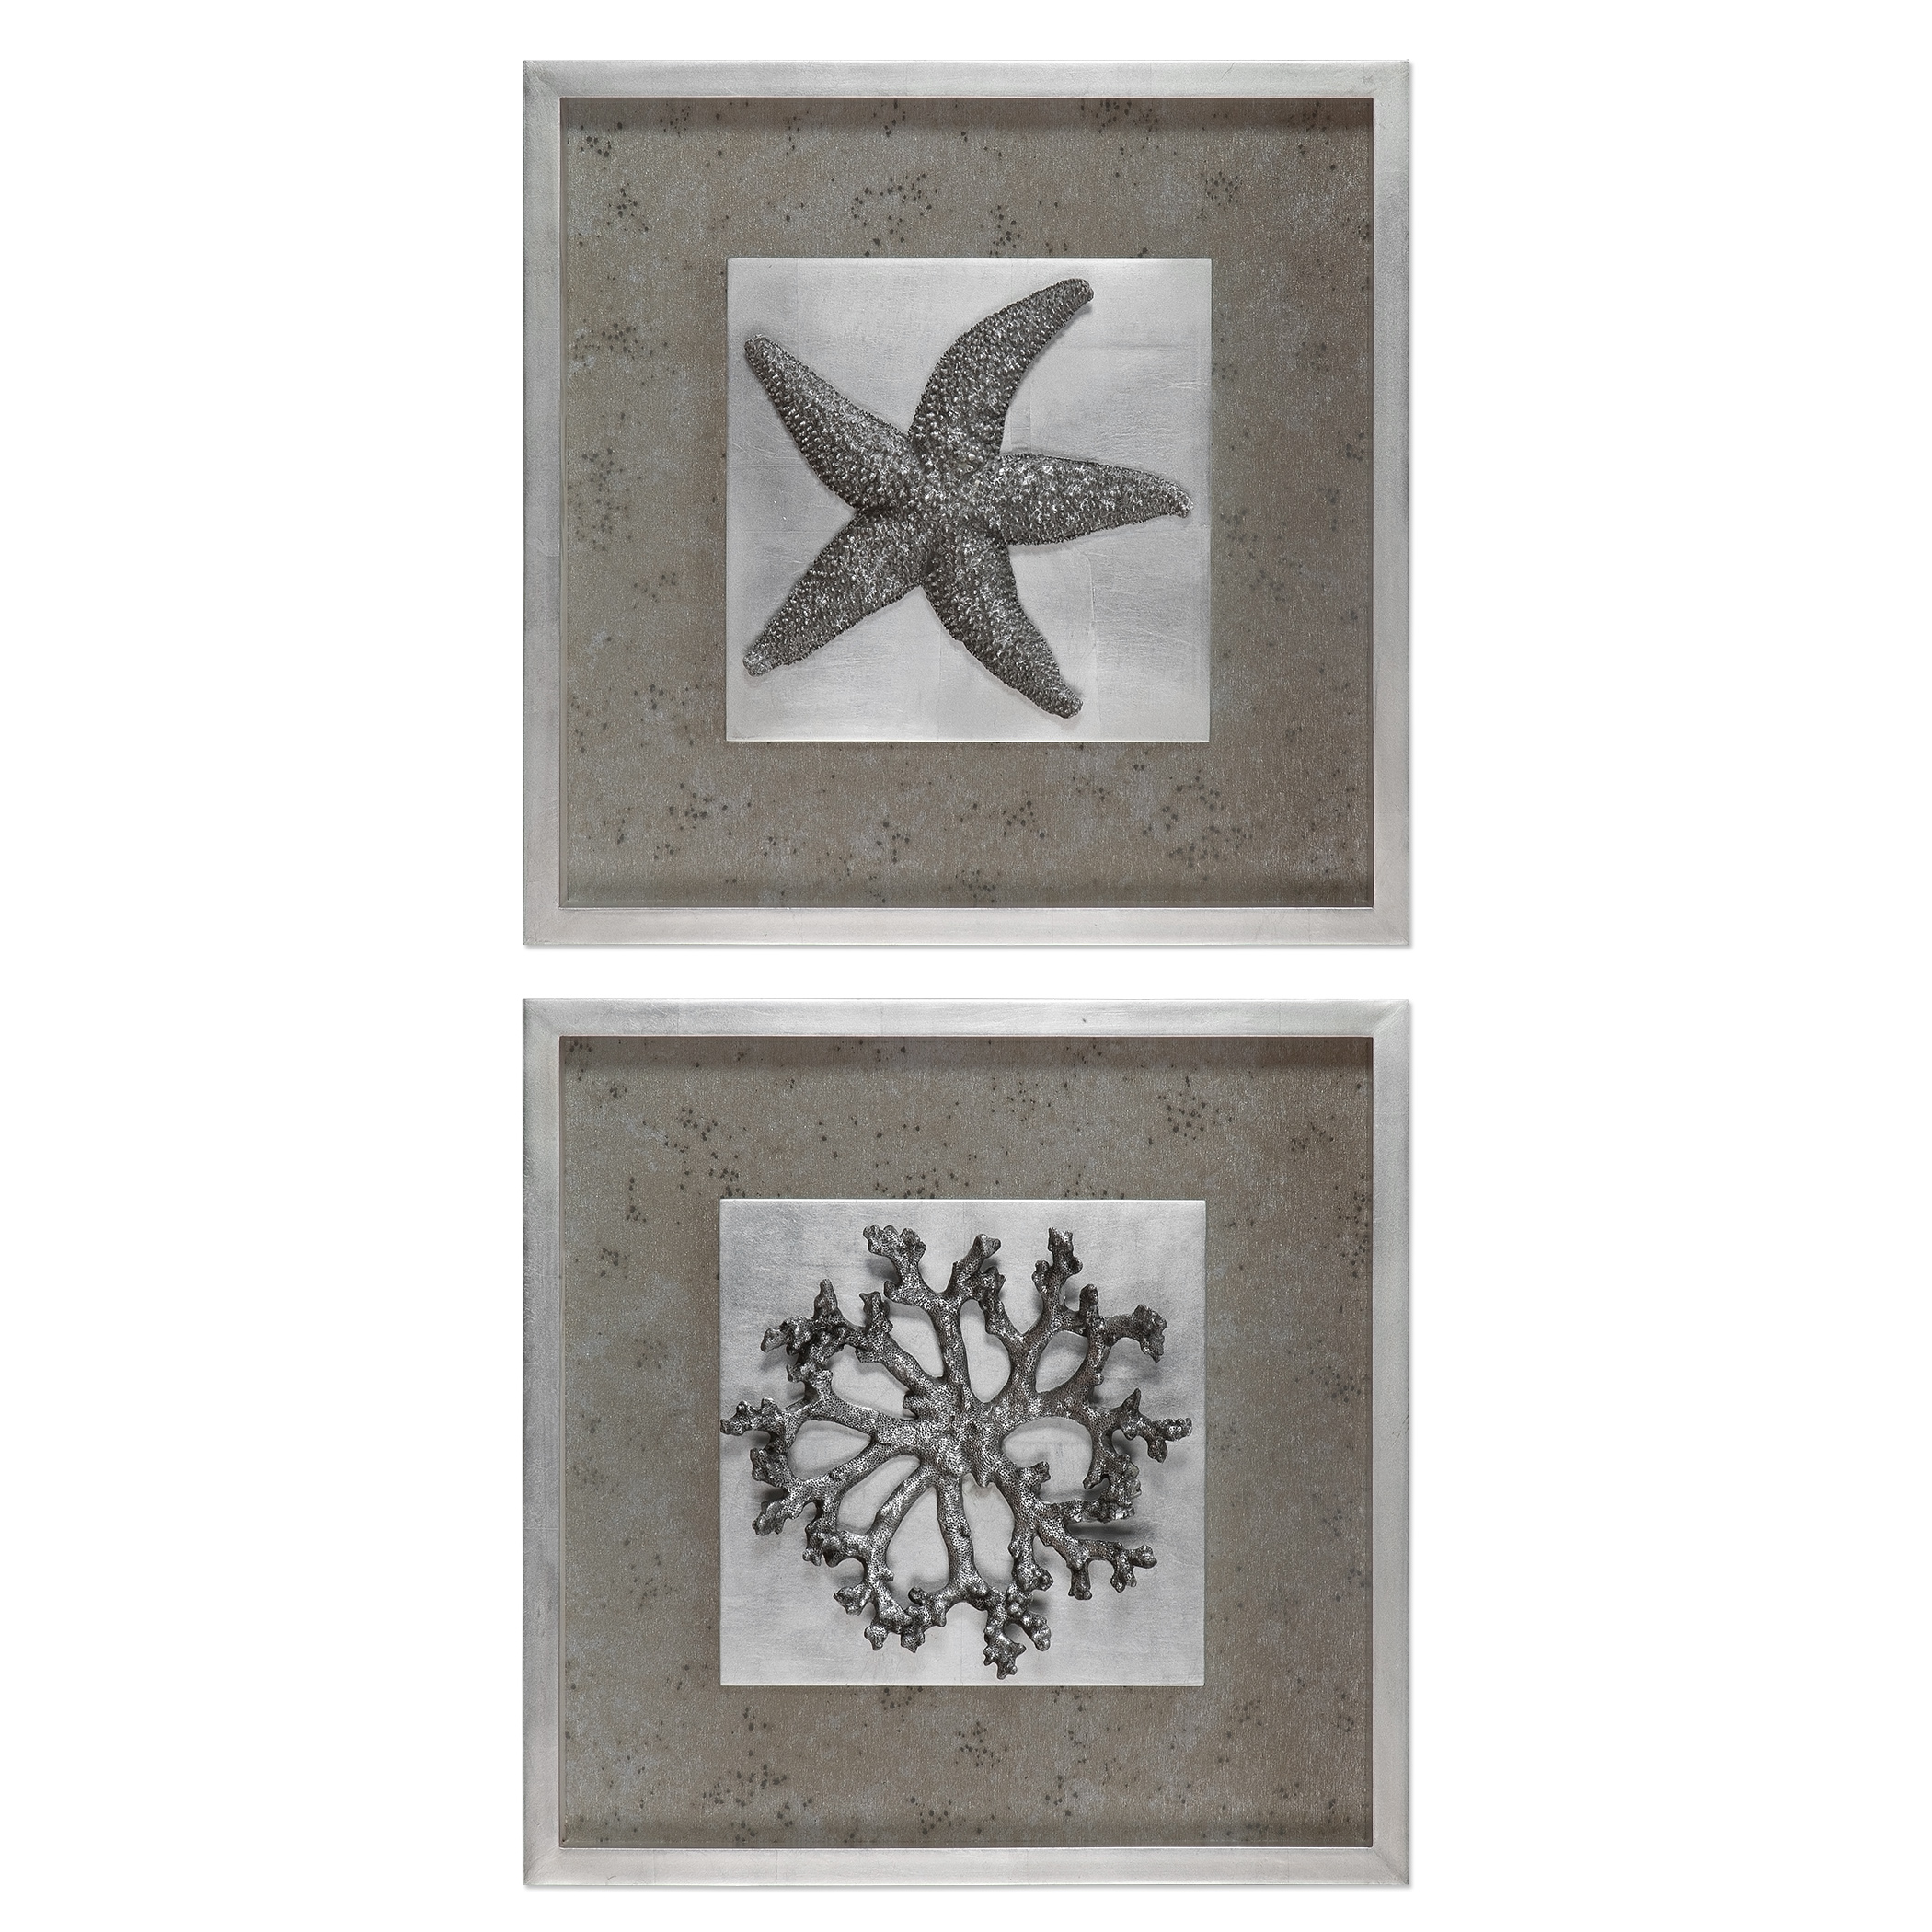 Uttermost Art Starfish & Coral Shadow Box Art, S/2 - Item Number: 41548